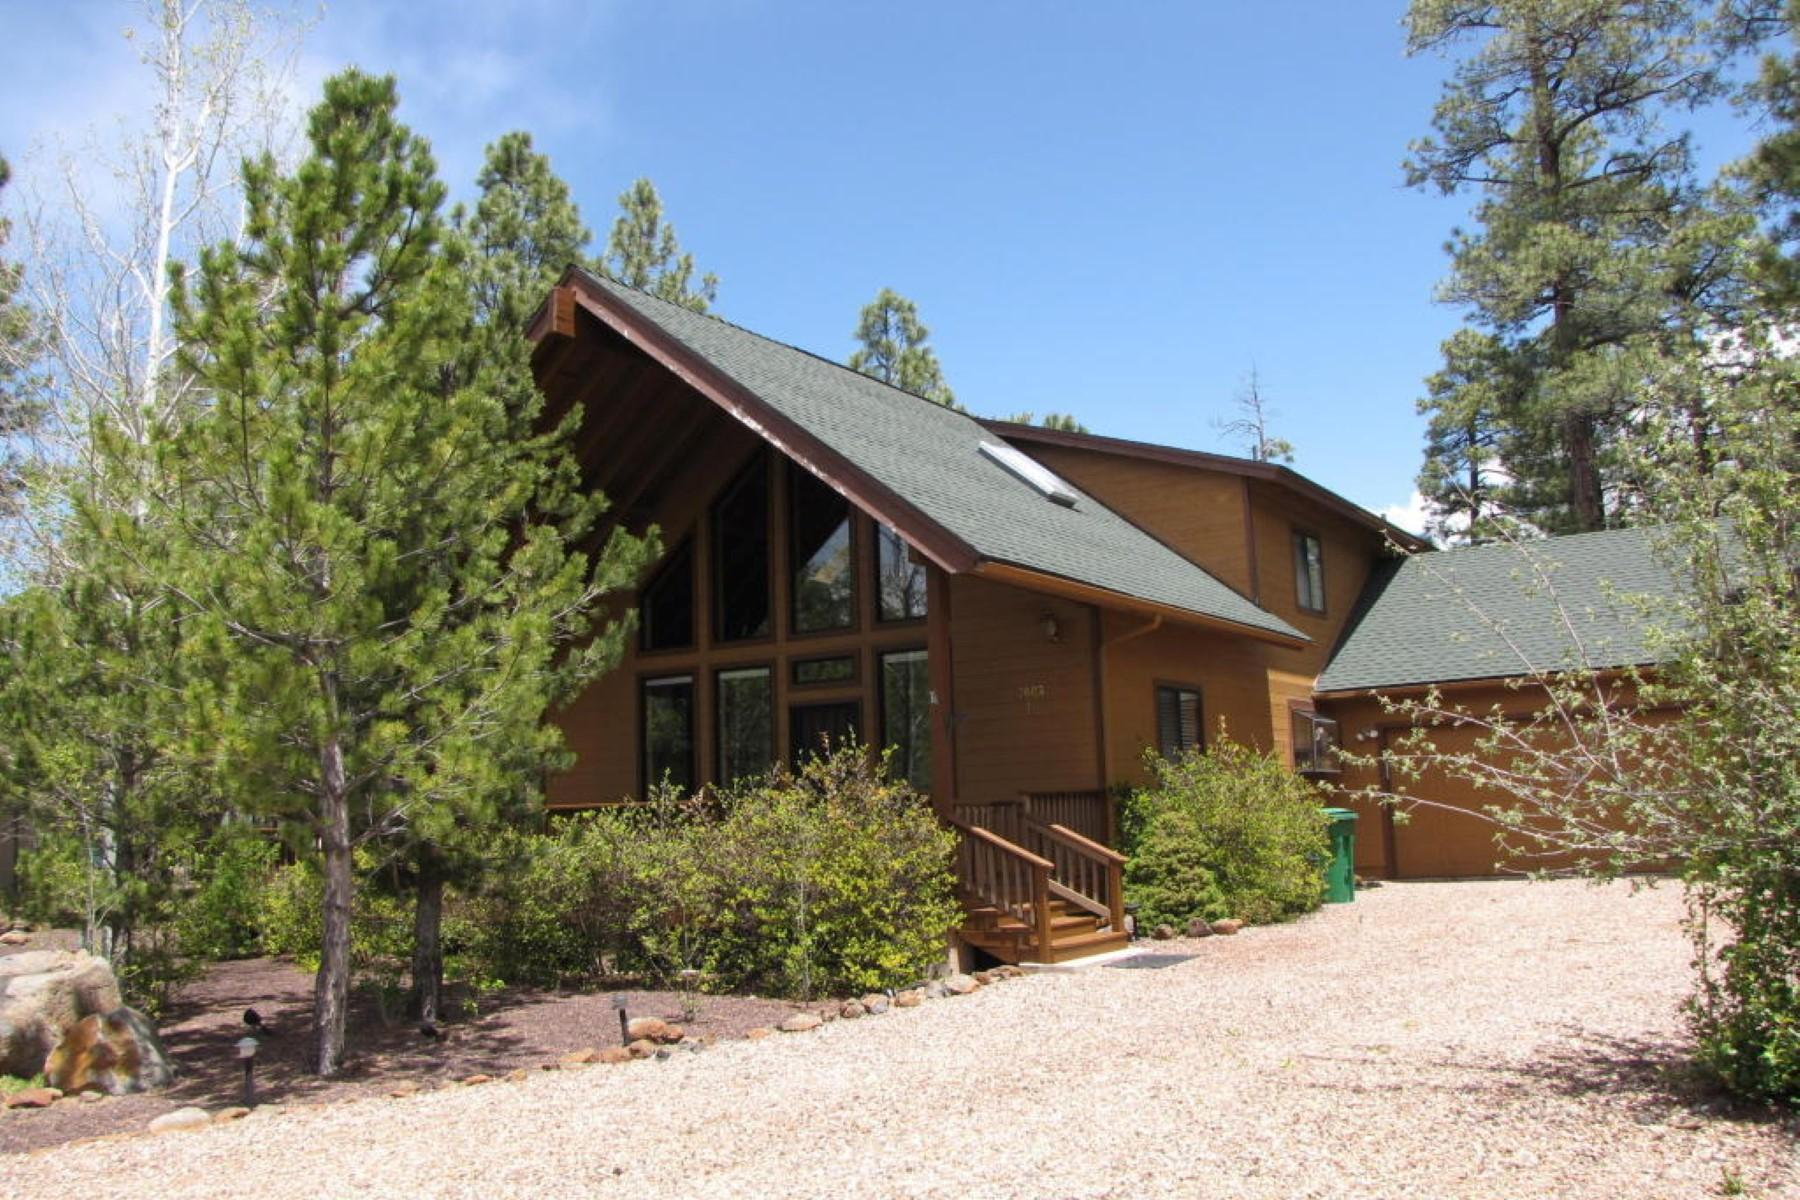 of rentals cabins design att rental x in white for ideas sale home pinetop rent cabin arizona mountain vacation photo